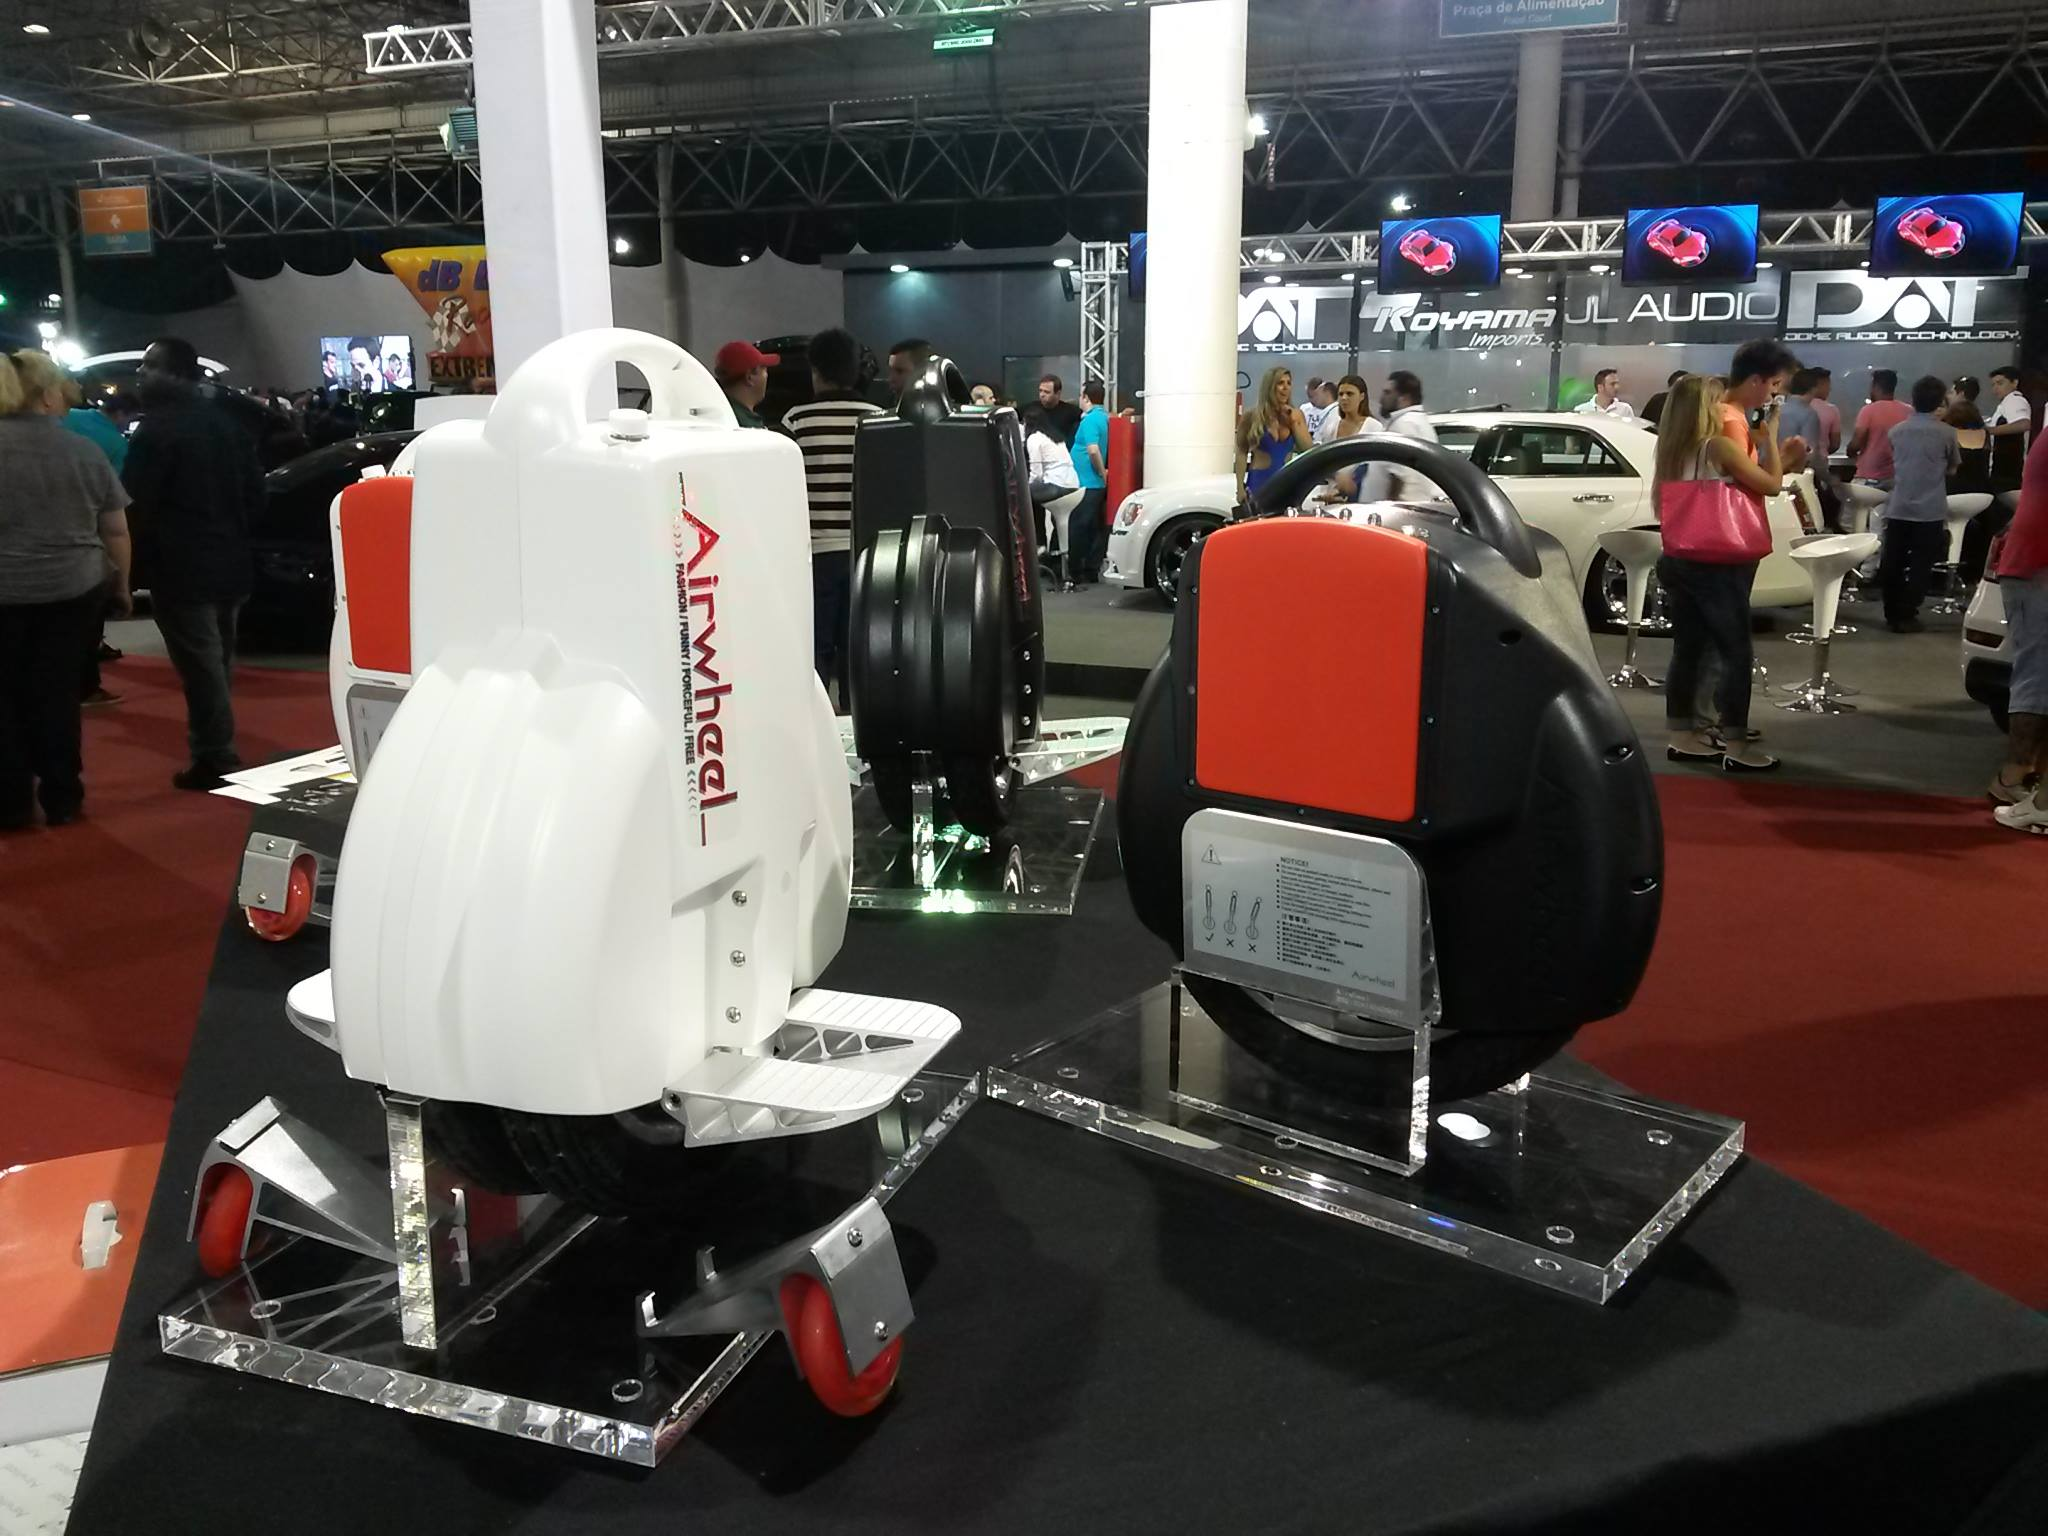 eléctrico scooter, Airwheel